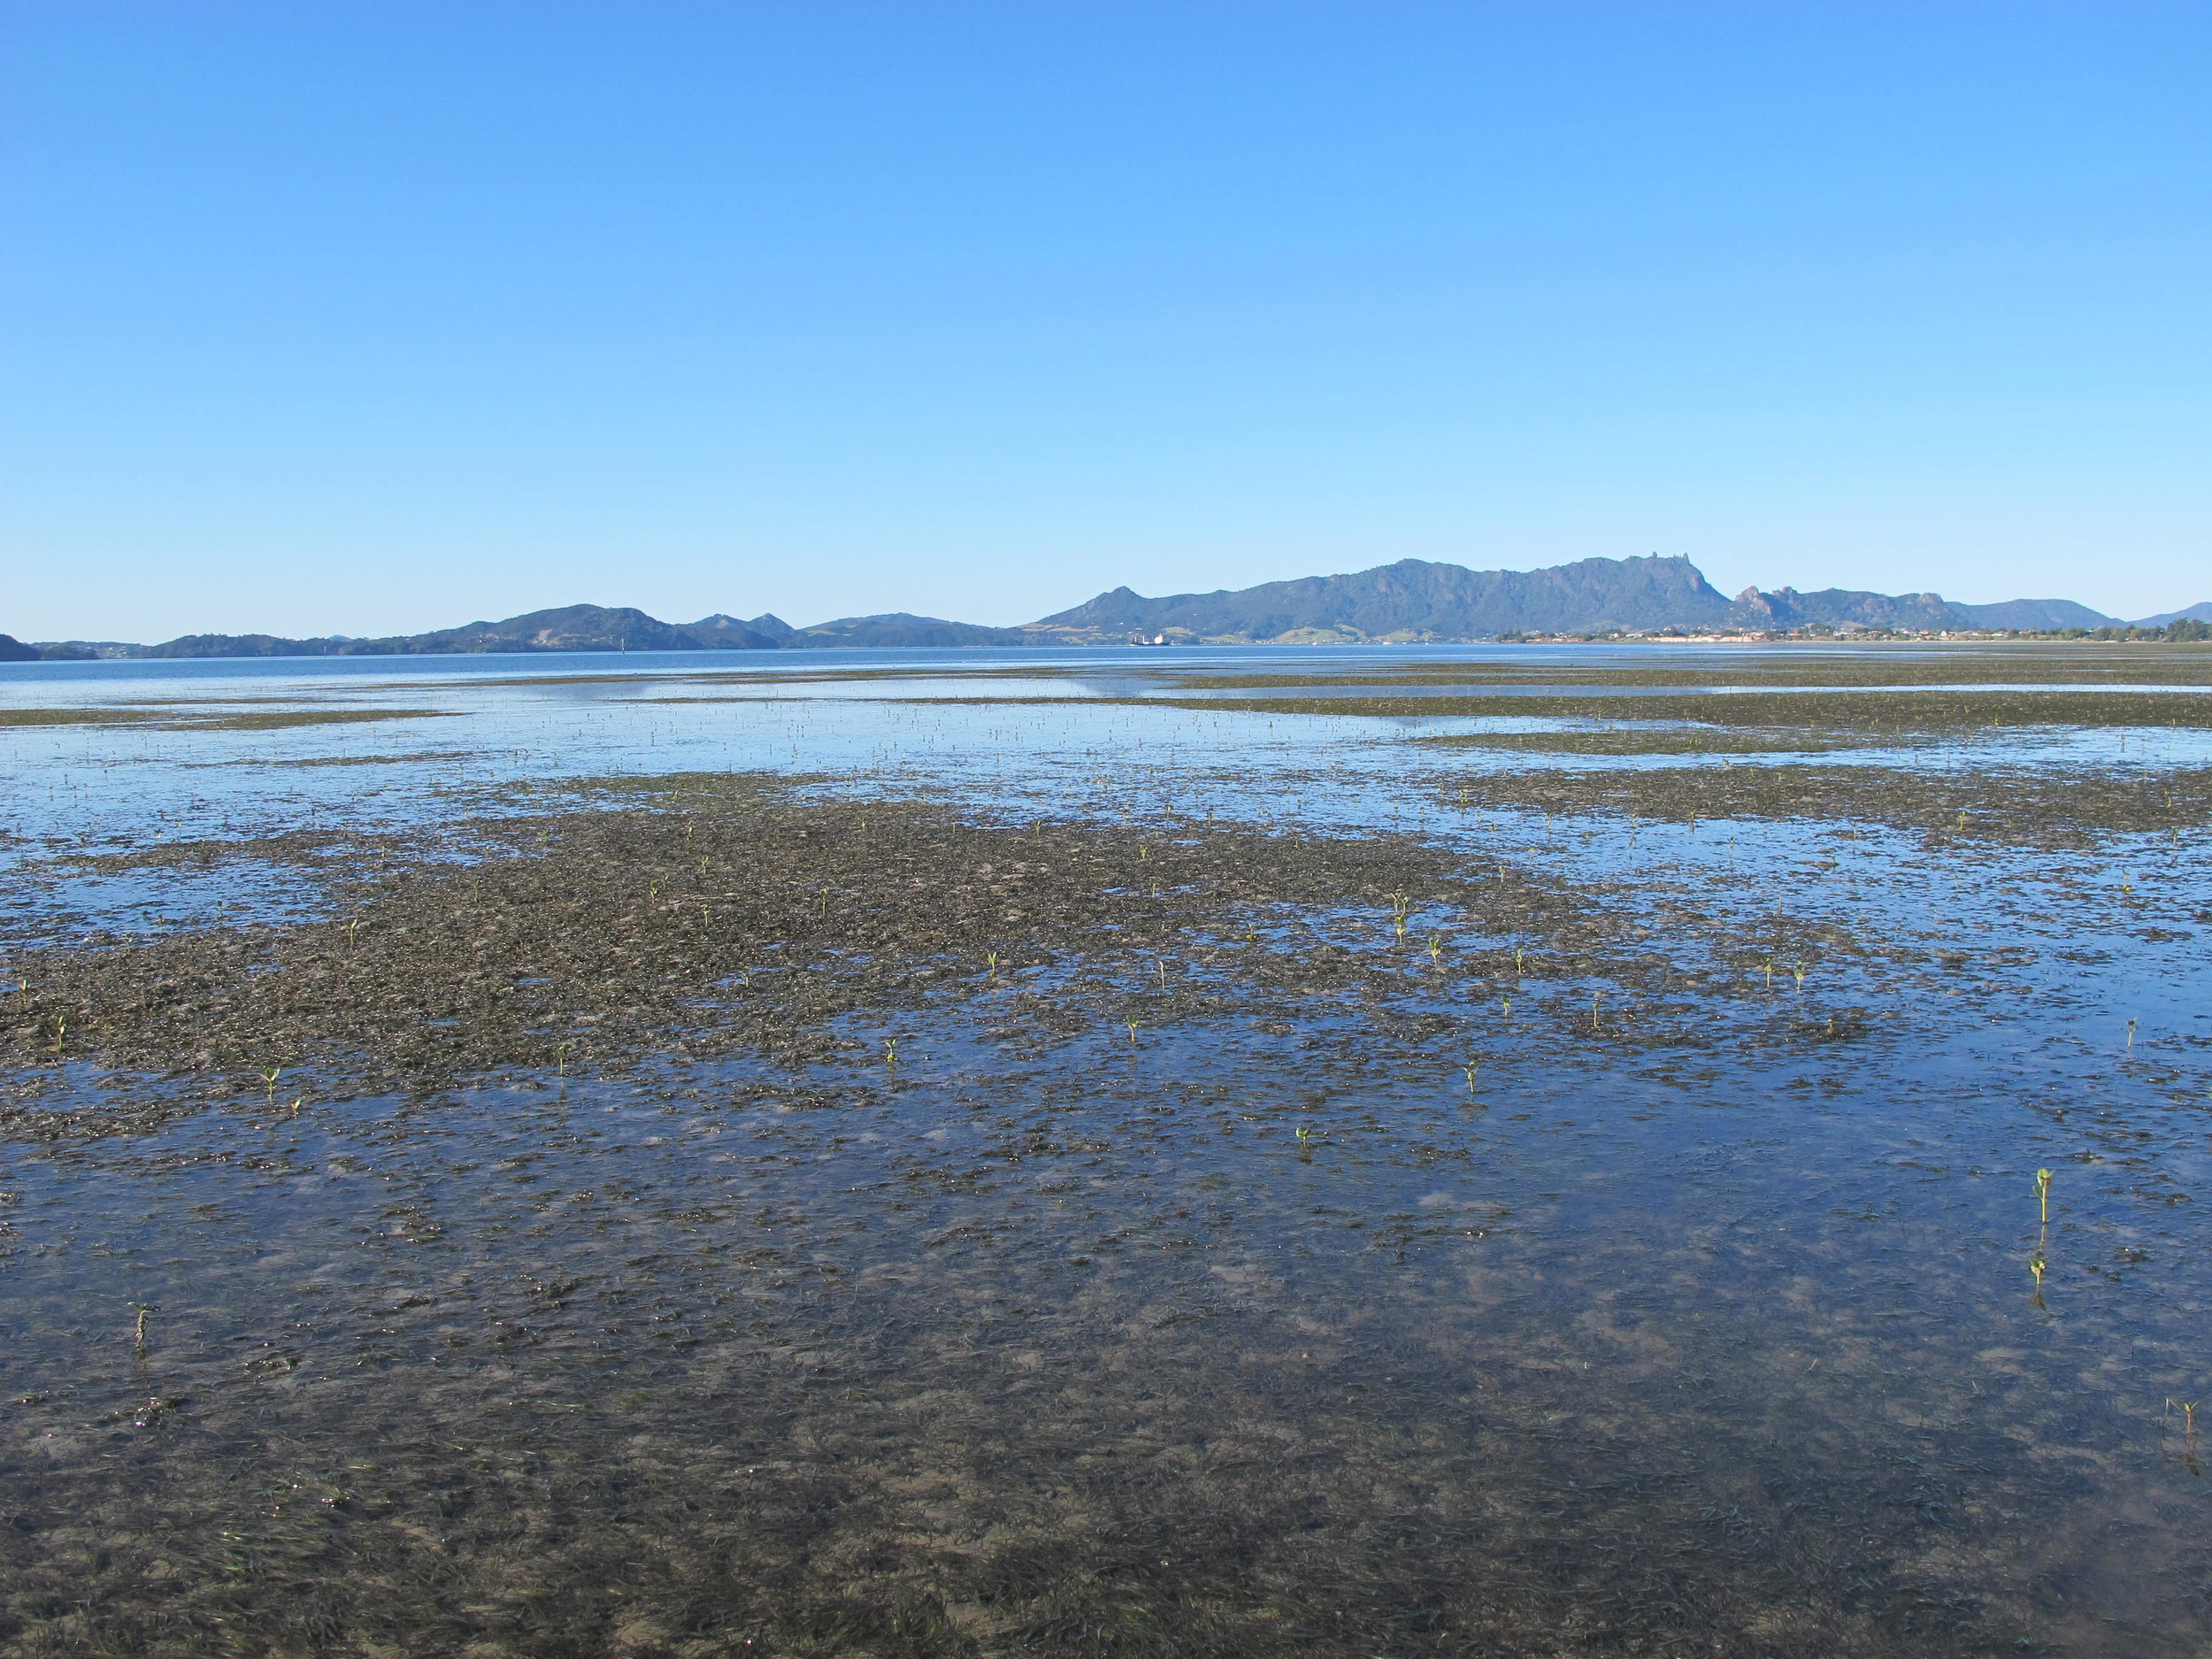 Photo 4  The regenerated seagrass meadows on the Takahiwai sandflats, Whangarei Harbour, in April 2013 (Photo: Crispin Middleton).